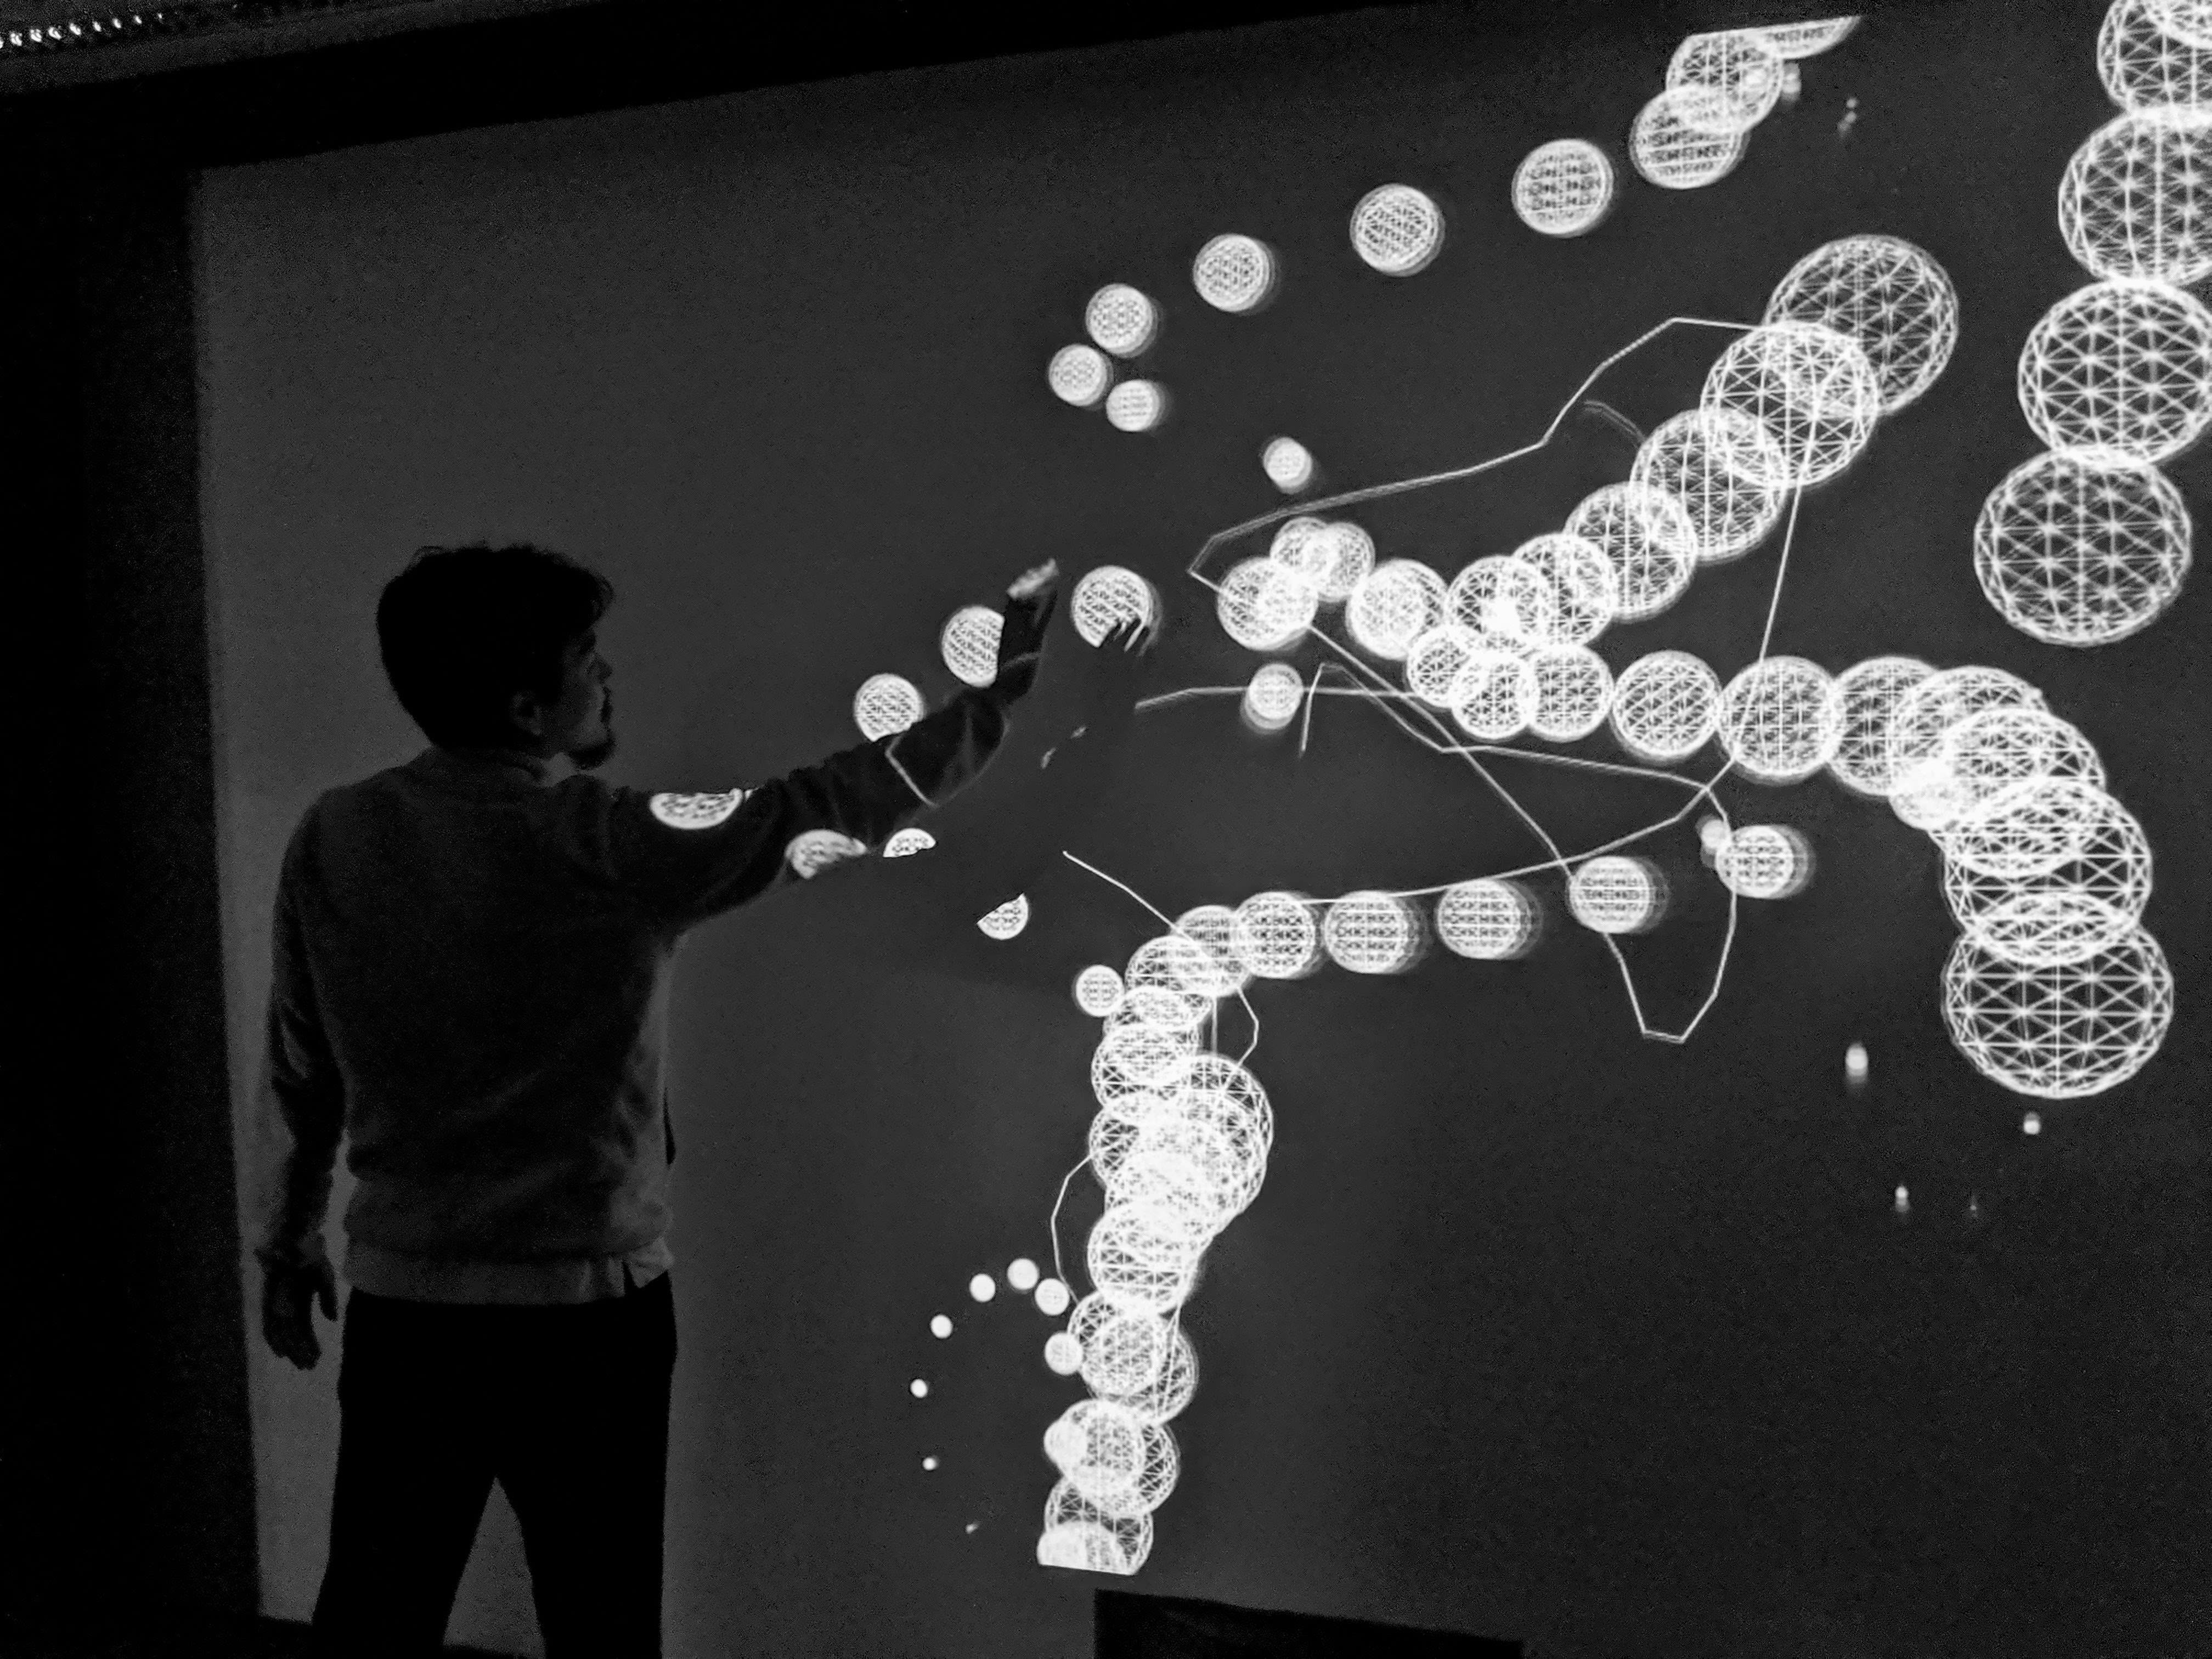 wimbledon-college-of-arts-ba-theatre-design-Youngjun-Chang-Interactive-Projection.jpg